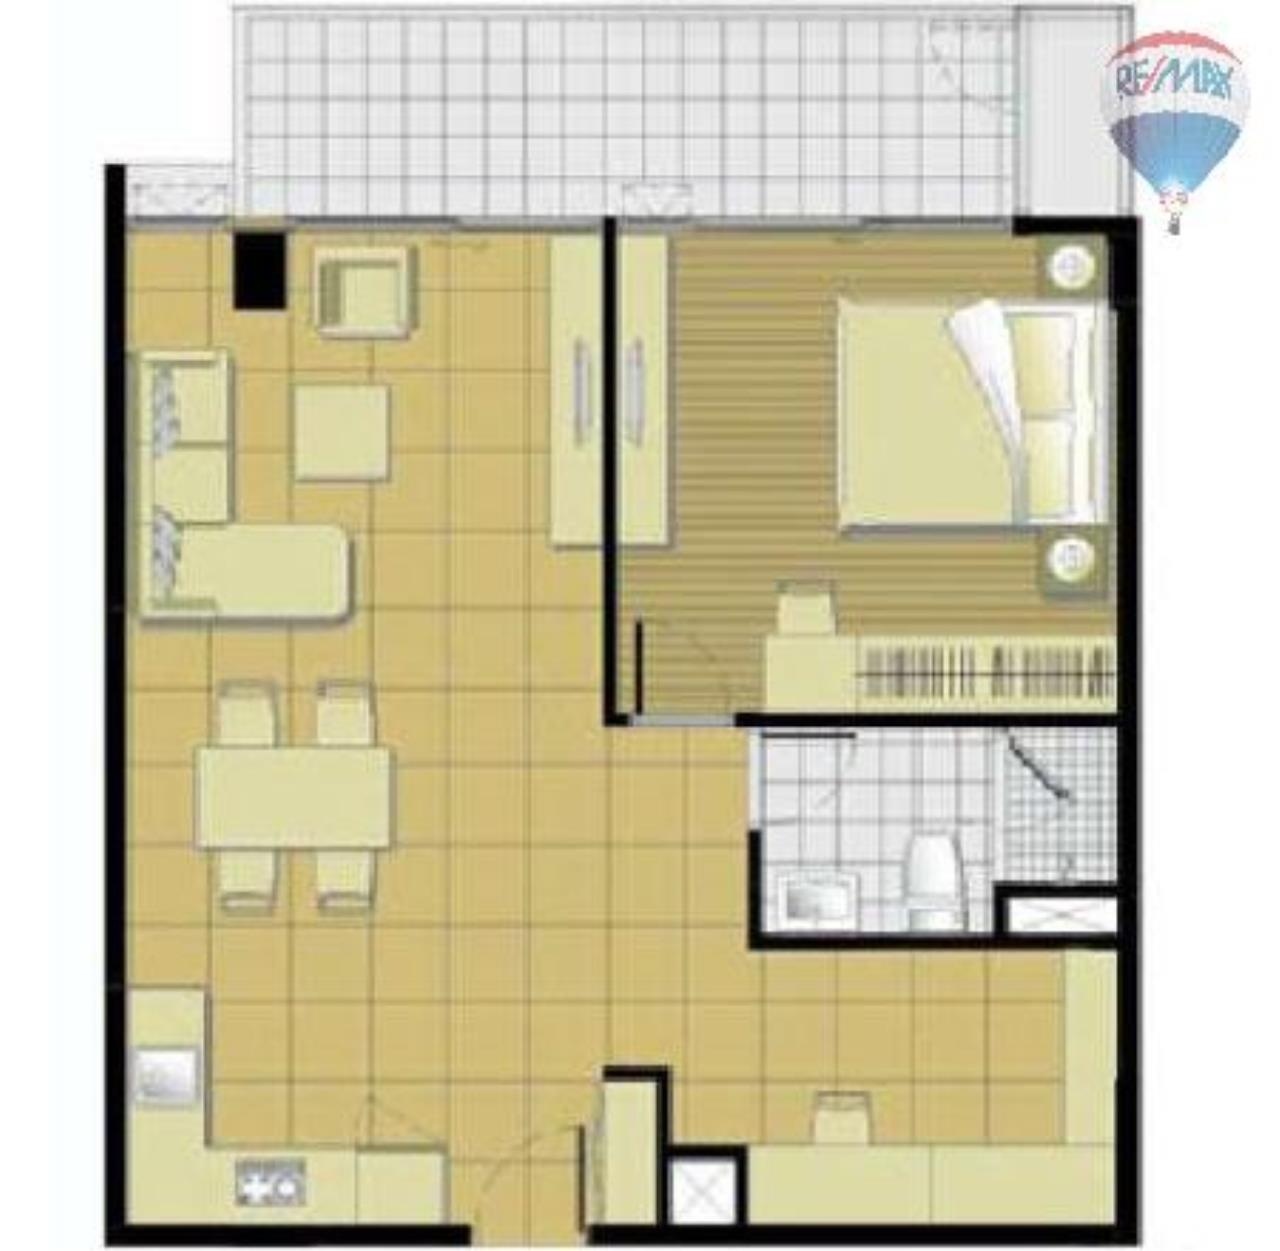 RE/MAX Properties Agency's 1 Bedroom 66 sq.m. for Rent at Haven Phaholyothin 3